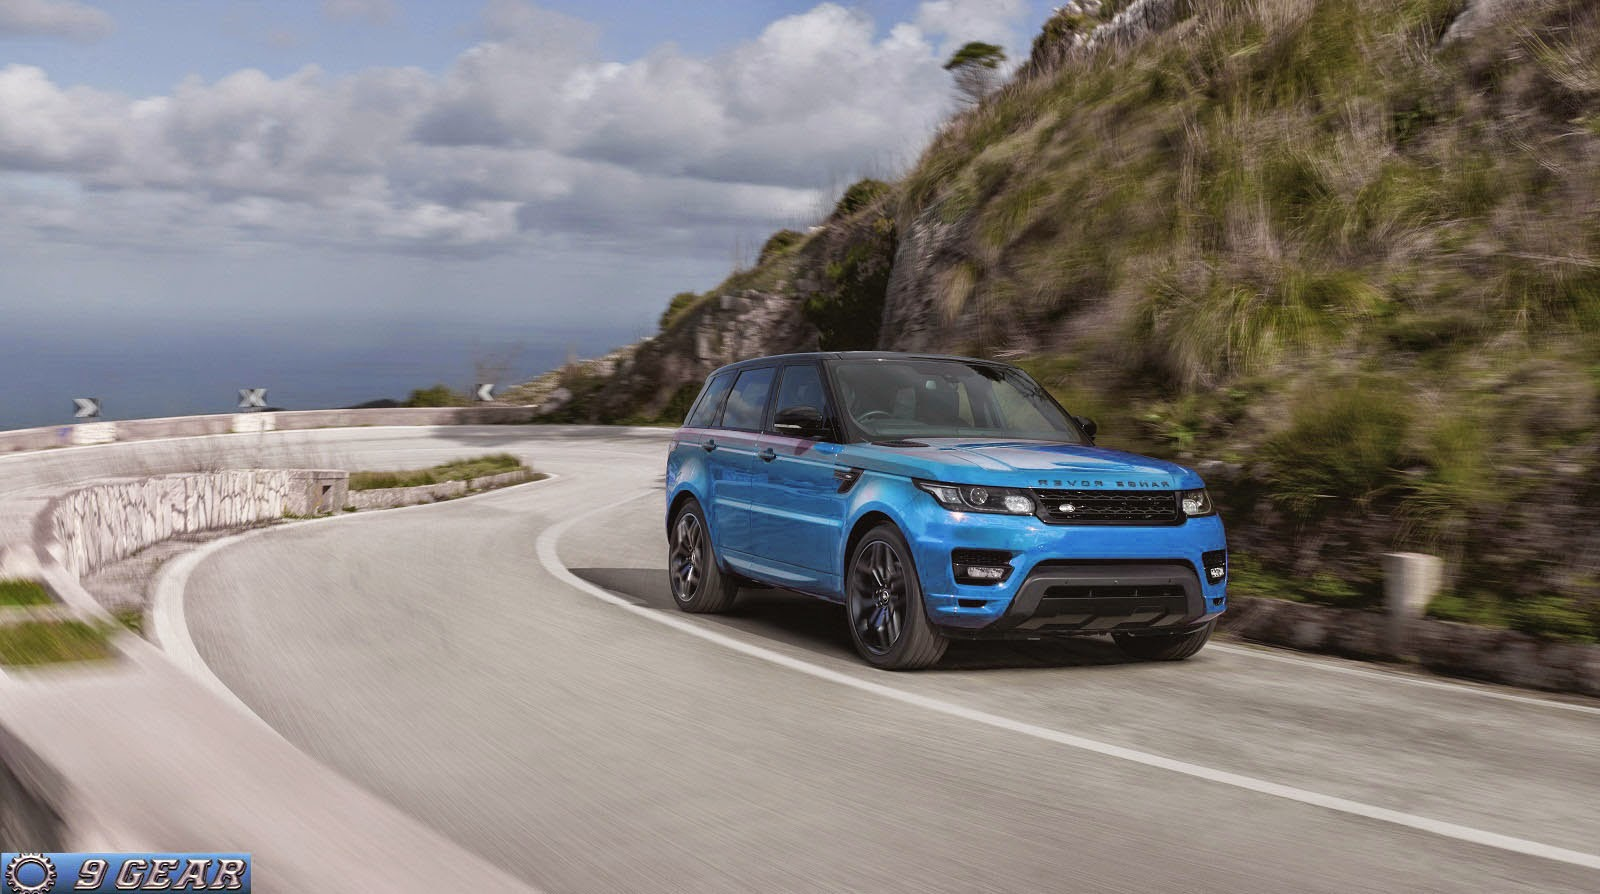 2016 Range Rover Sport HST Limited Edition 380hp | Car Reviews | New ...